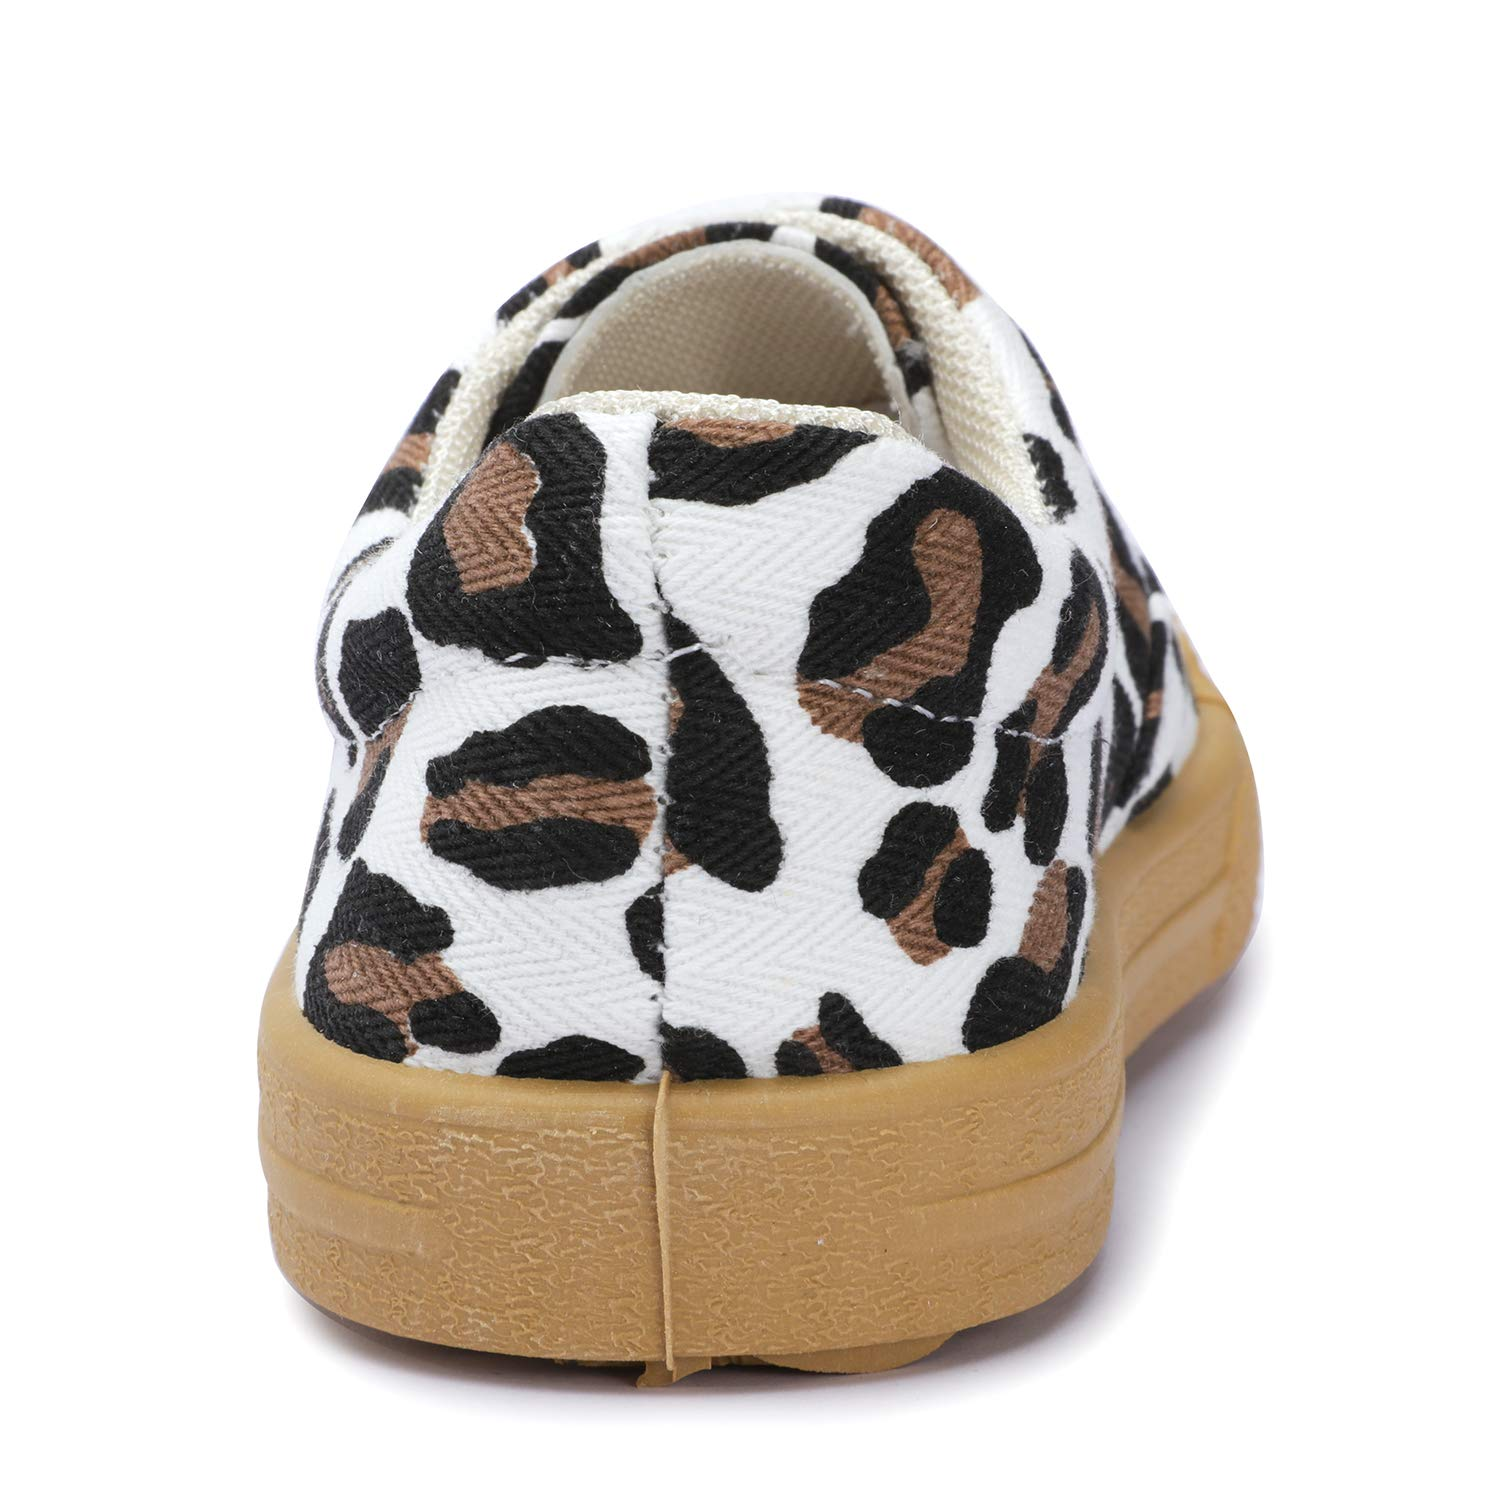 UBELLA Boys Girls Leopard Print Fashion Sneakers Casual Flat Canvas Running Shoes Toddler//Little Kid